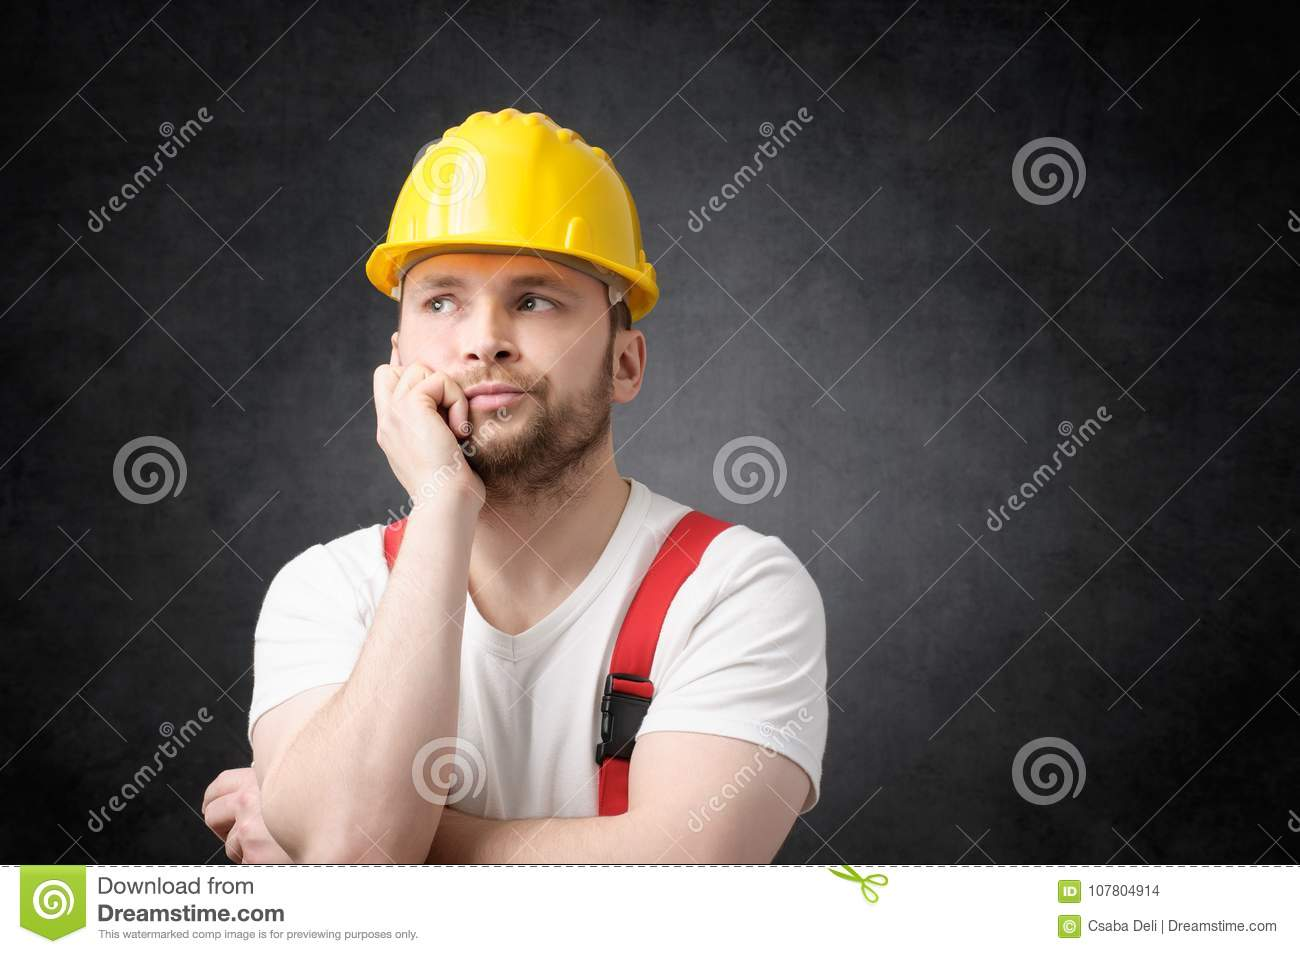 Disappointed Construction Worker Stock Photo - Image of ...